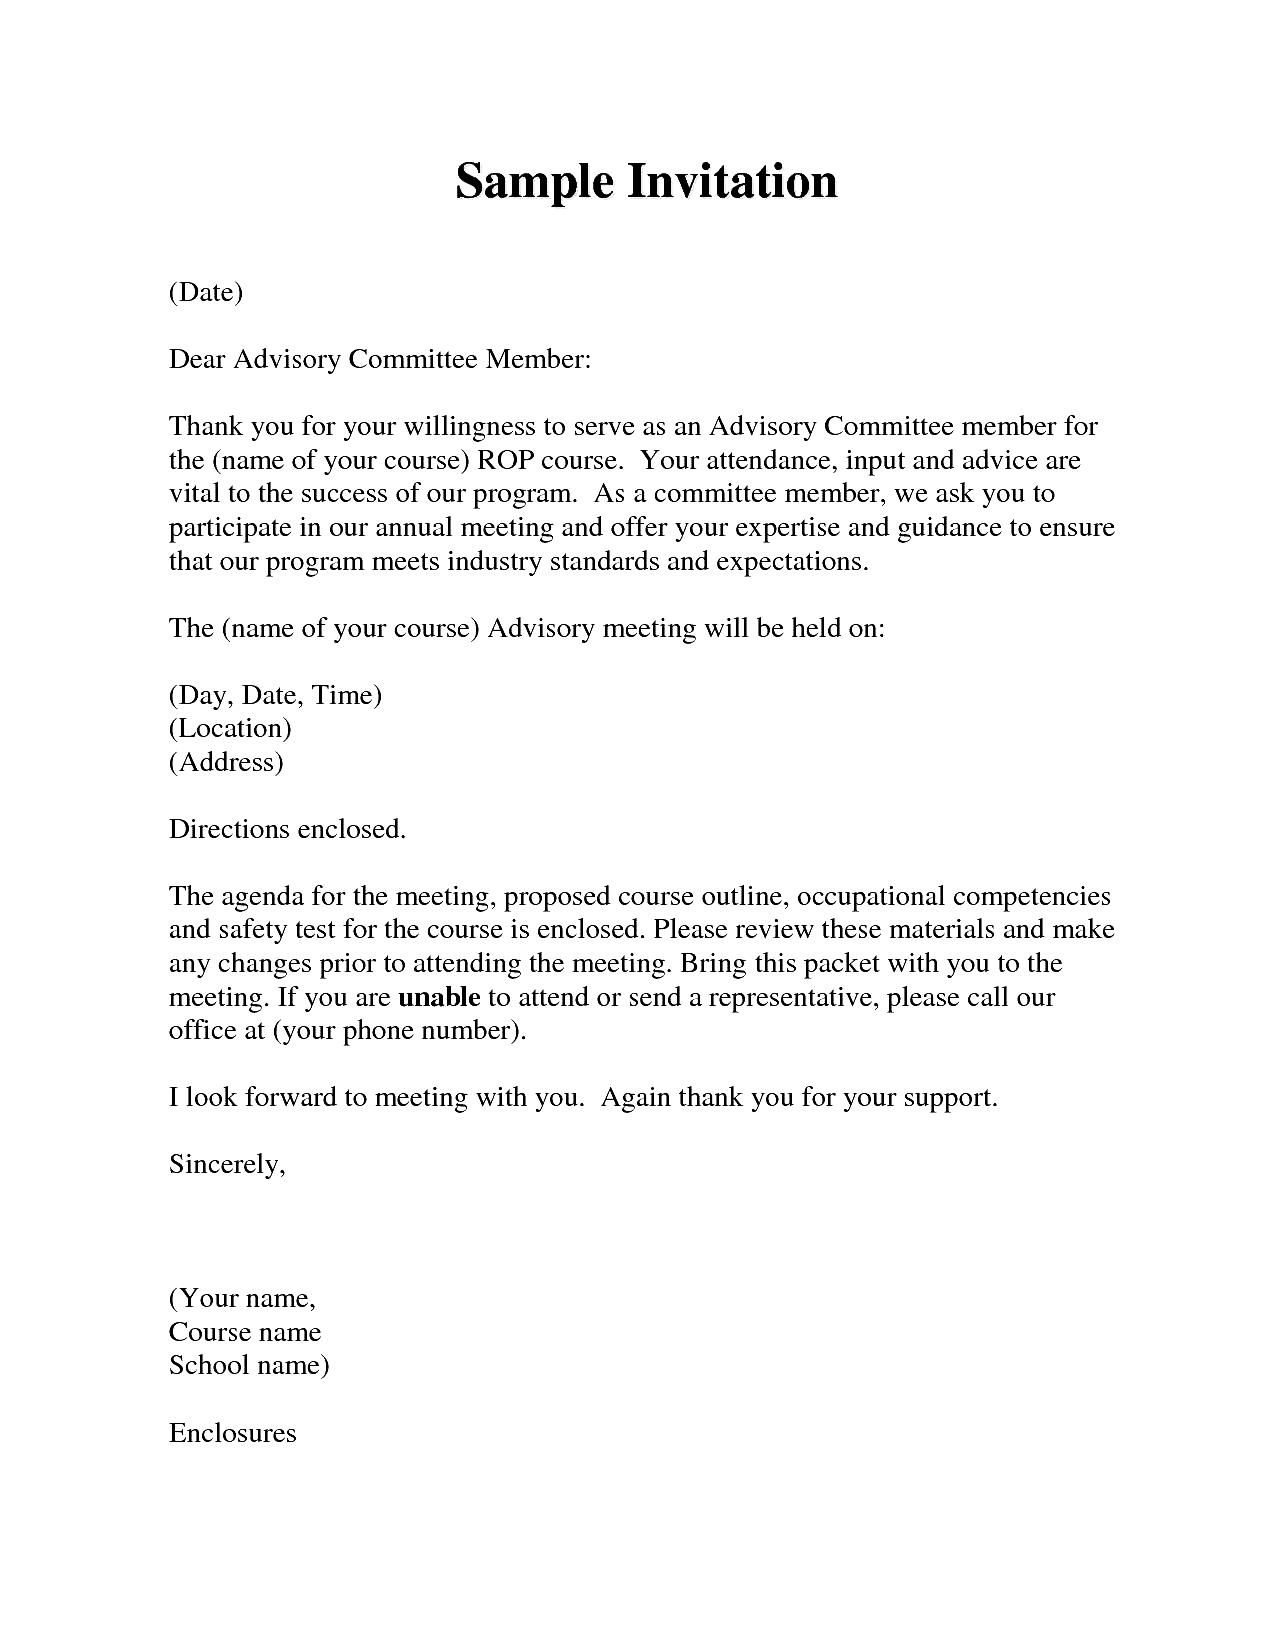 Invitation Letter Formal For Meeting How To Write A Formal Invitation Letter For A Meeting